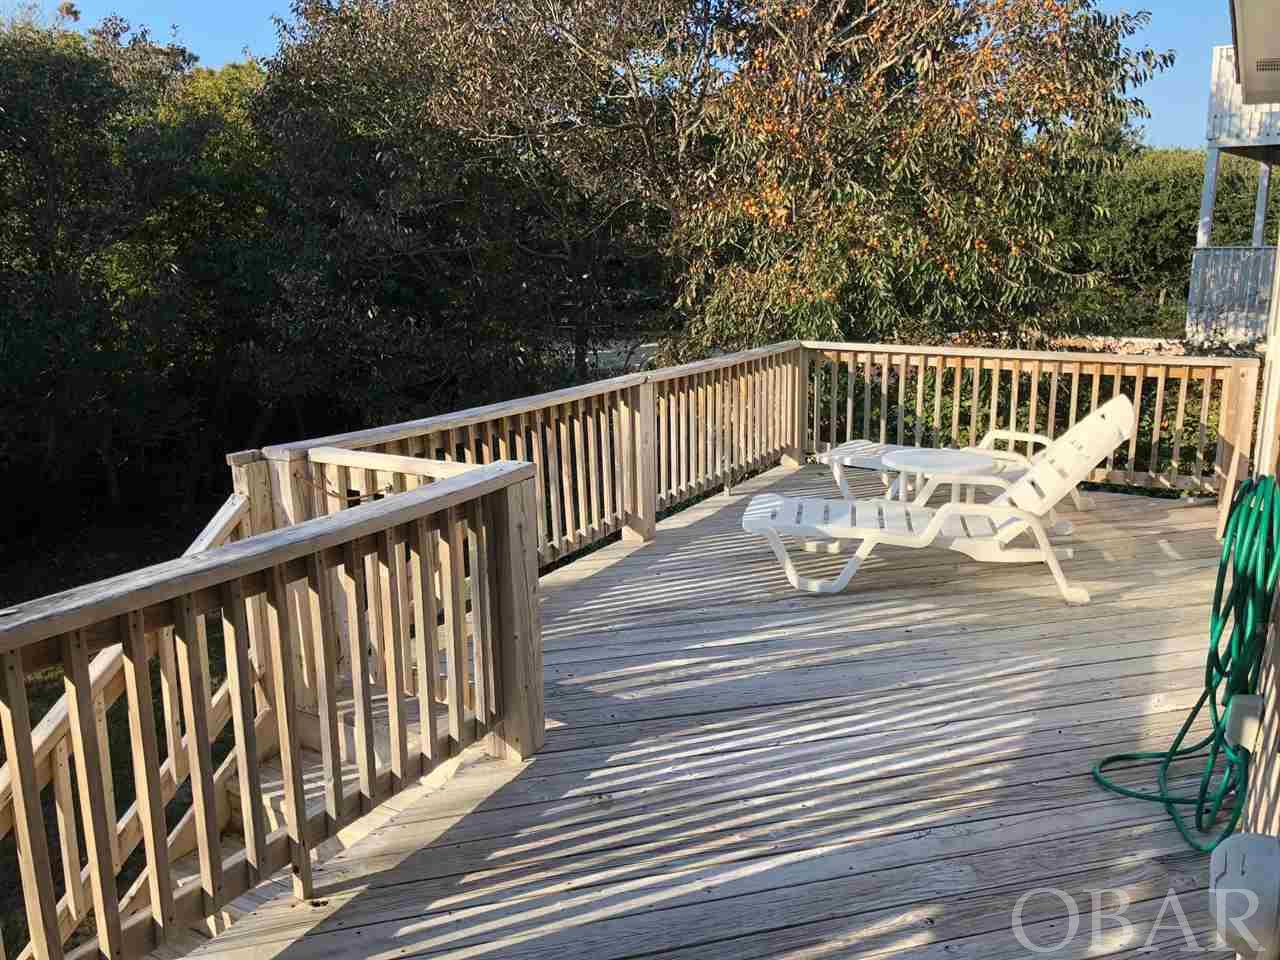 Plover Drive, Duck, NC 27949, 4 Bedrooms Bedrooms, ,3 BathroomsBathrooms,Residential,For sale,Plover Drive,102159